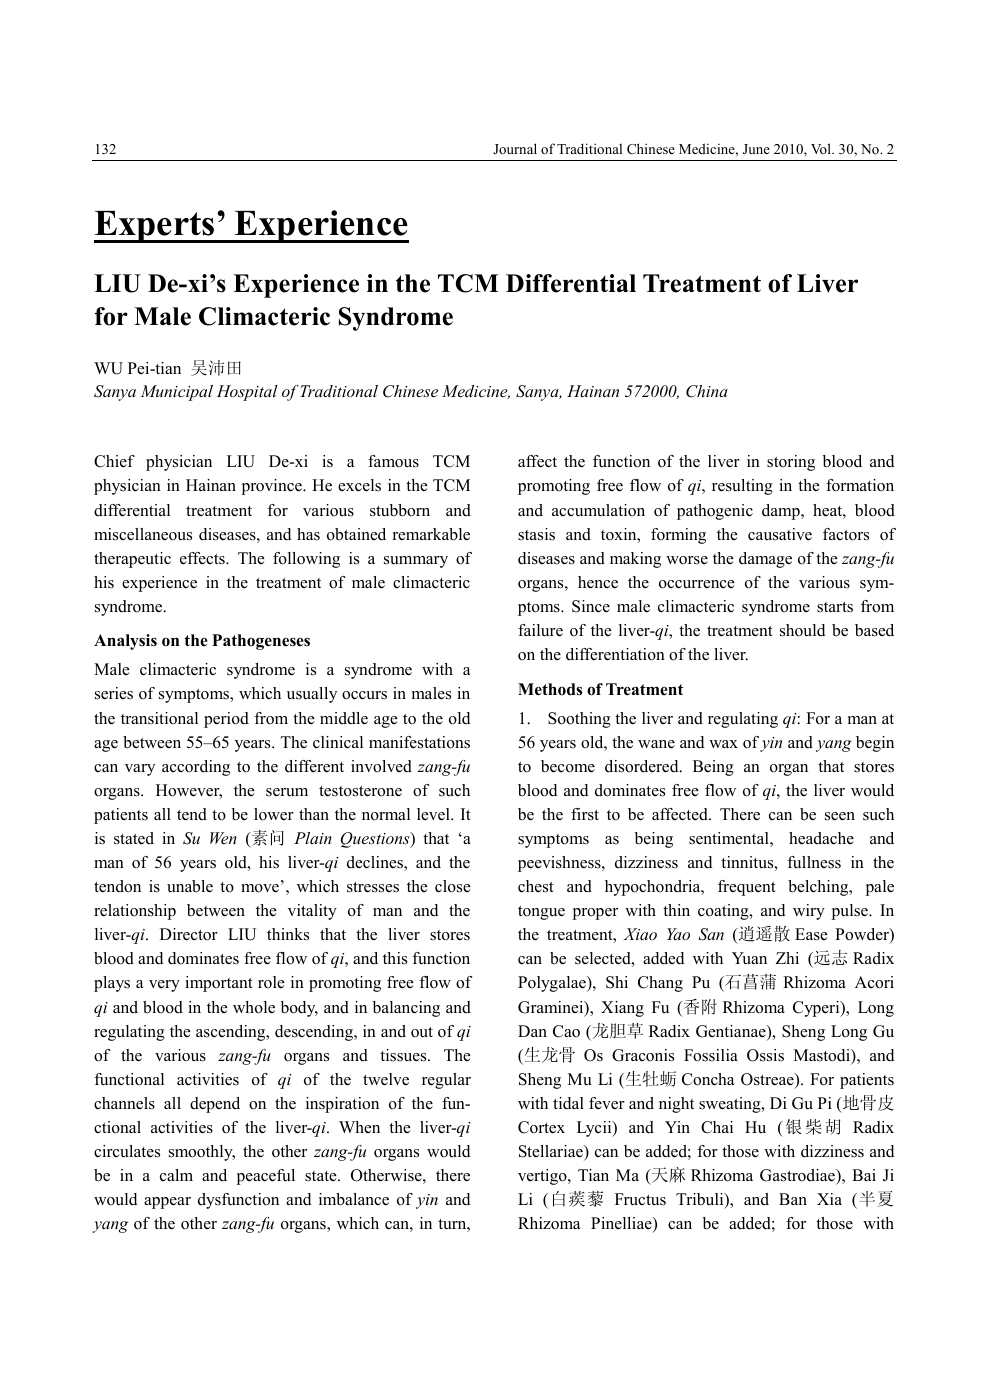 LIU De-xi's Experience in the TCM Differential Treatment of